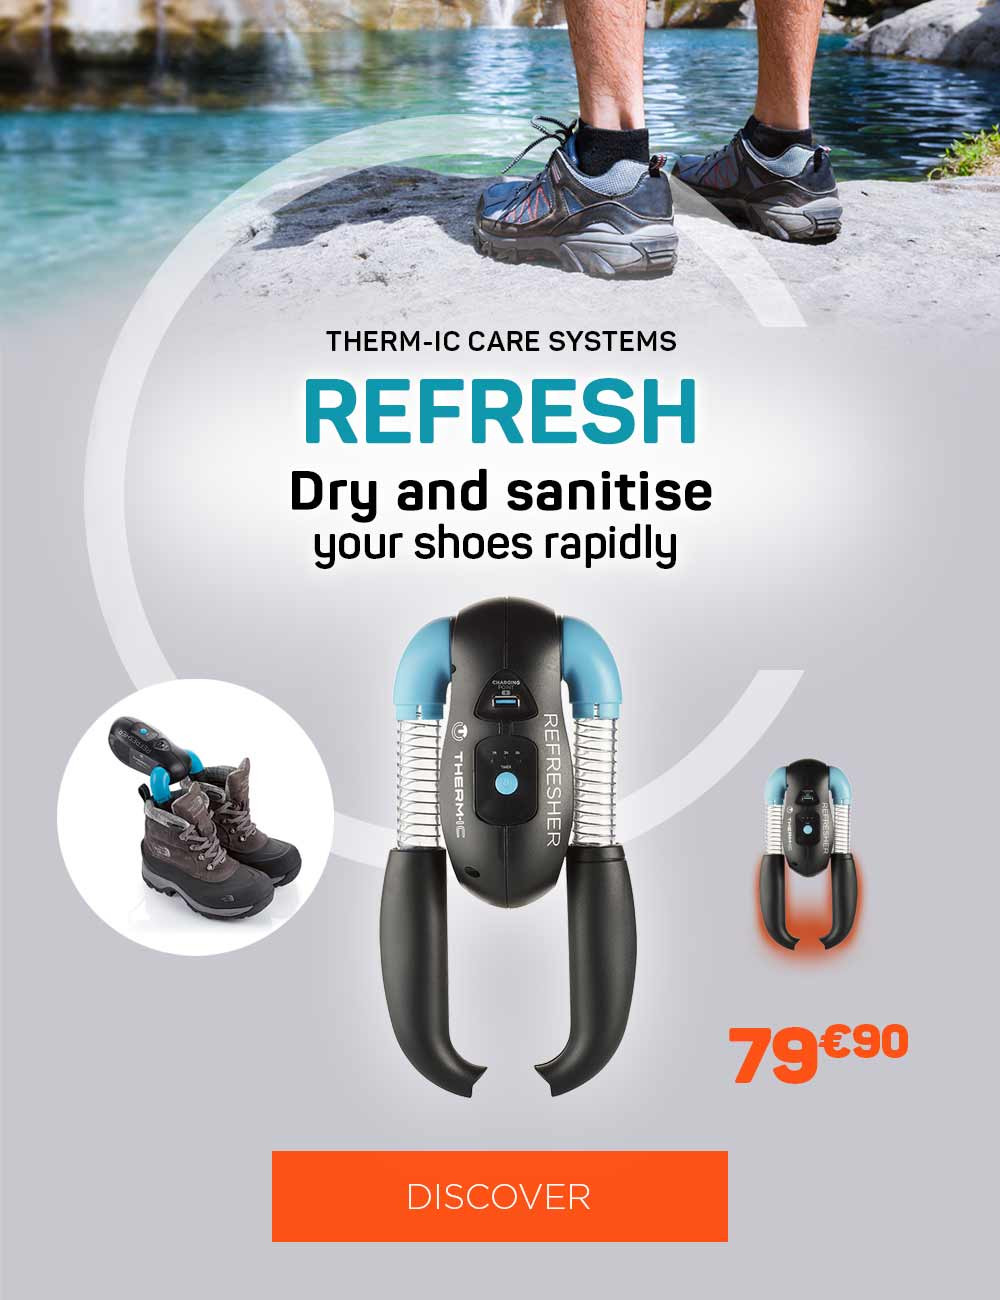 Dry quickly your hiking boots thanks to our Refresher!